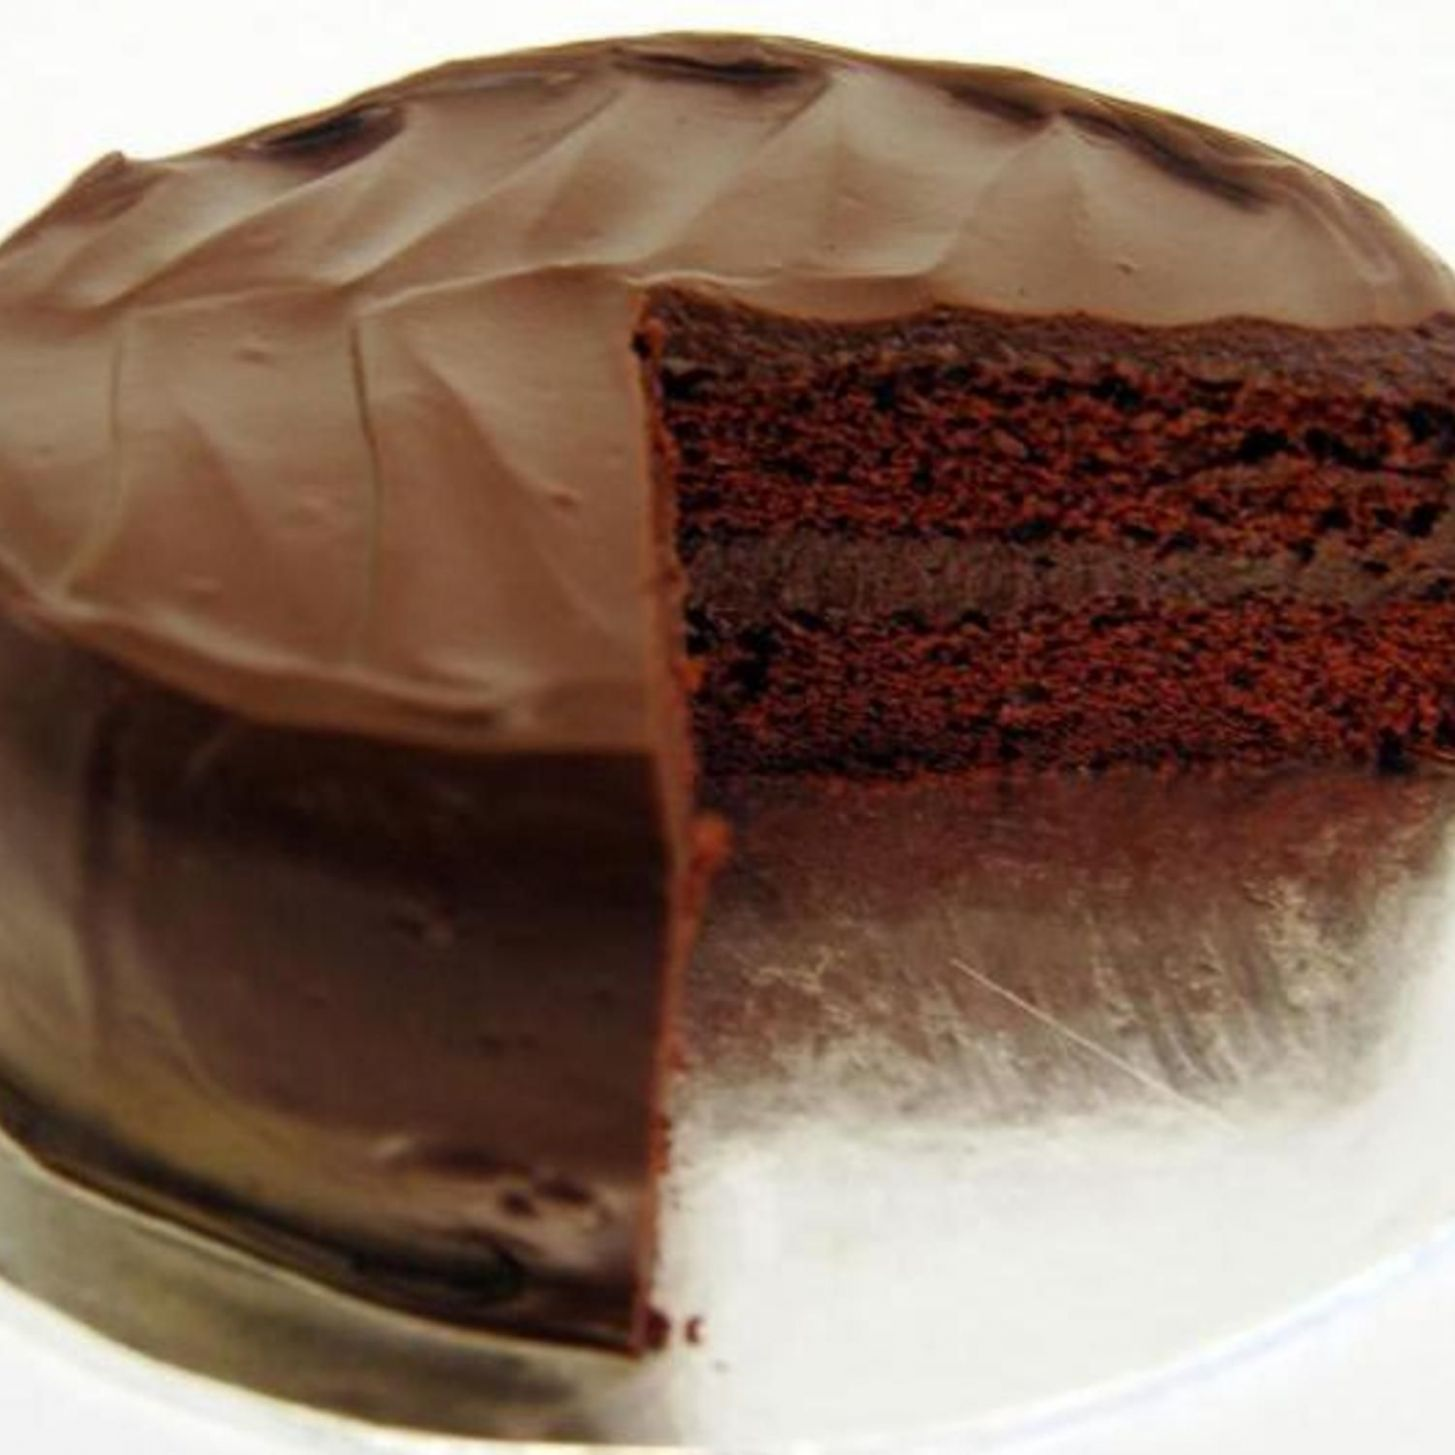 SUGAR FREE Chocolate Cake - Recipes Cake For Diabetics